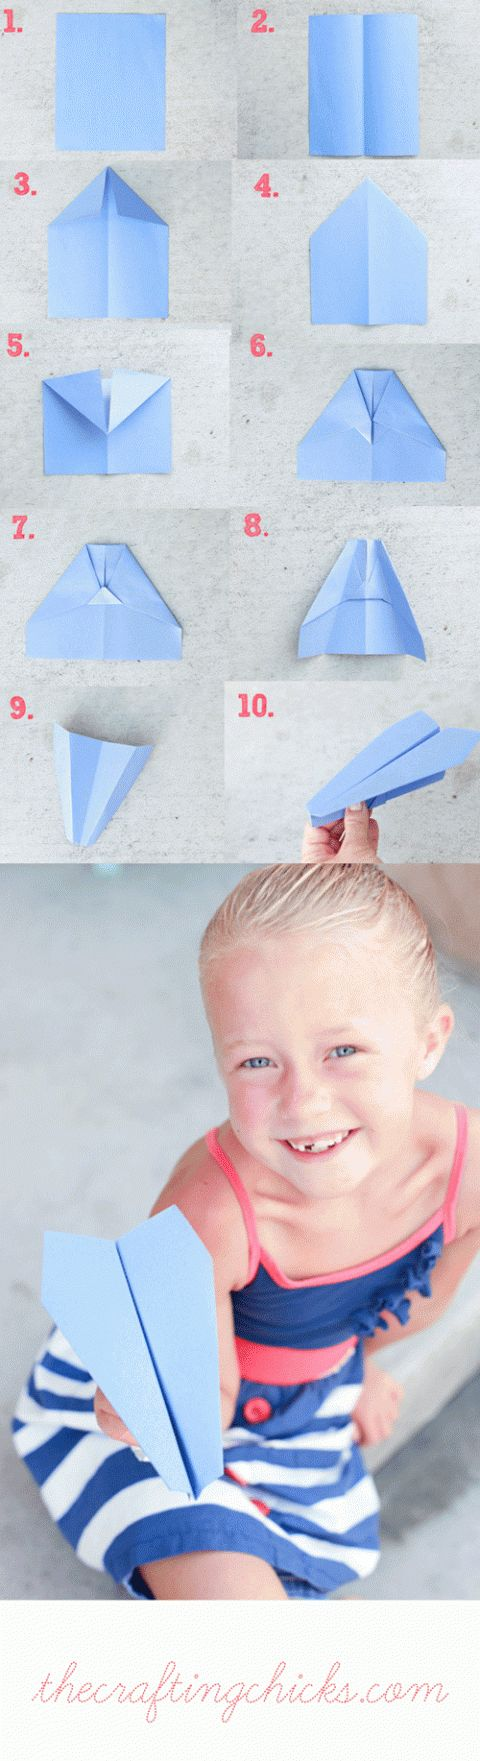 Paper-Airplane-2